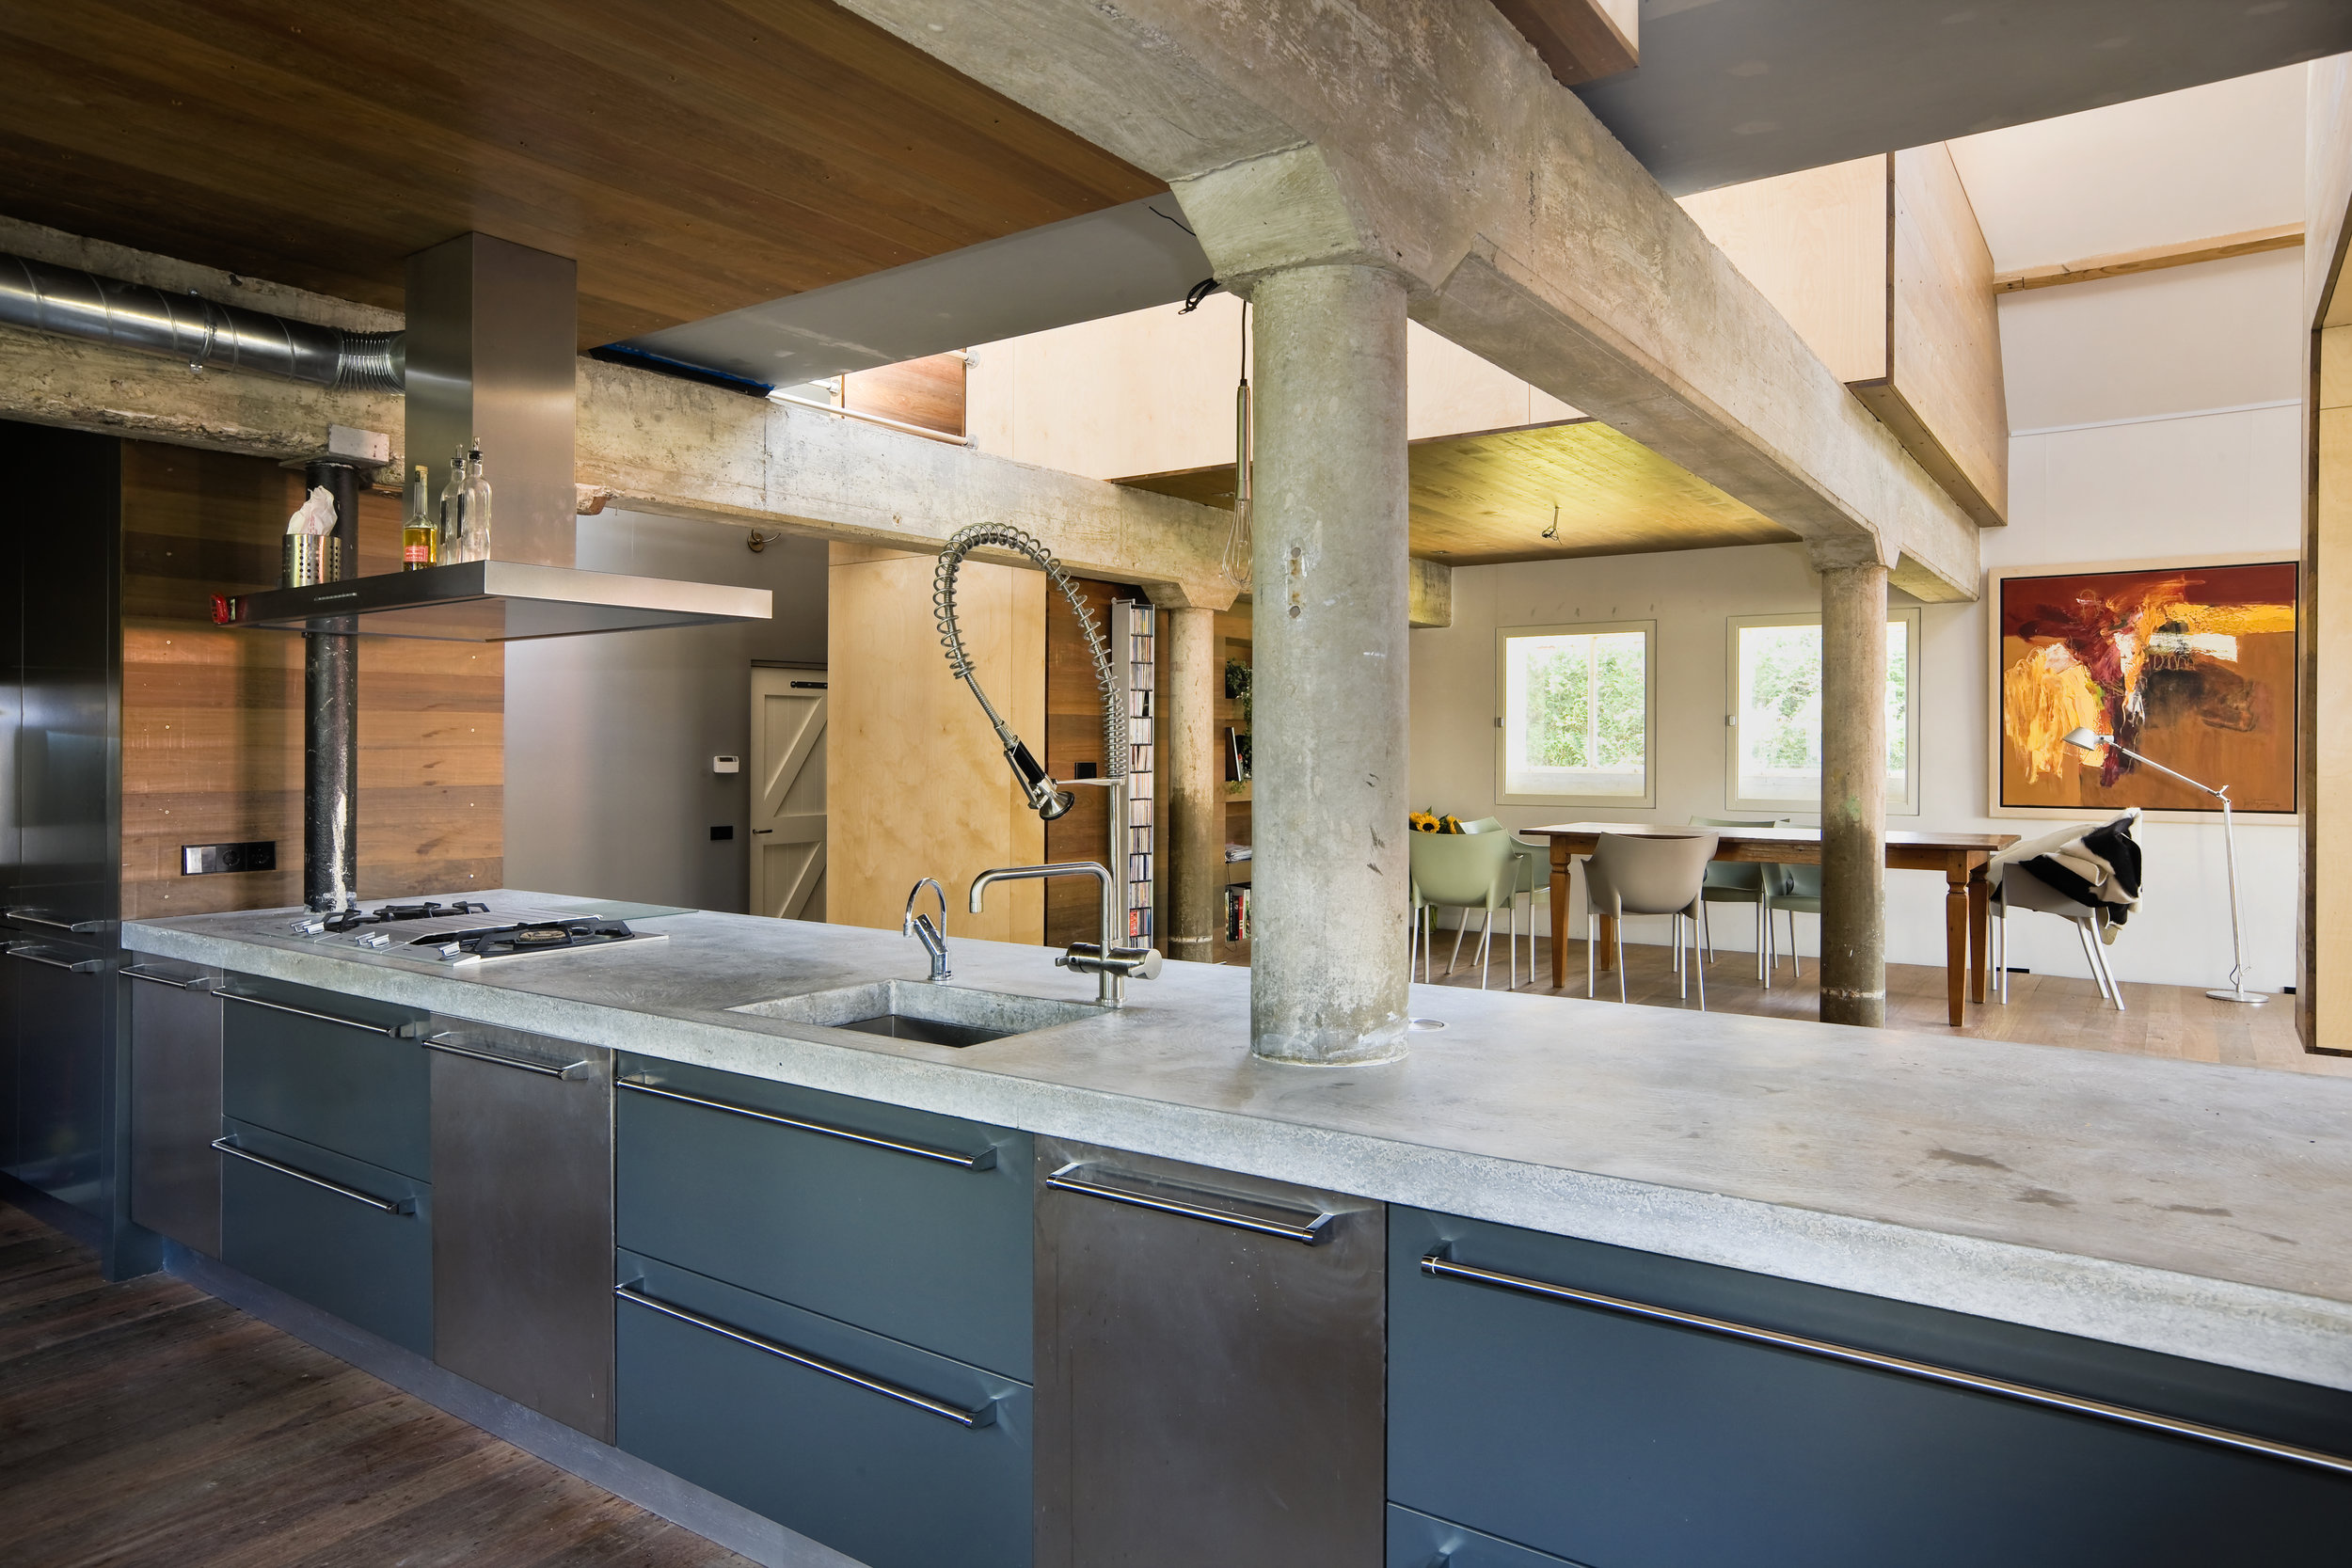 the floor of the kitchen is slightly elevated, offering a good view on the surroundings through the former stable windows